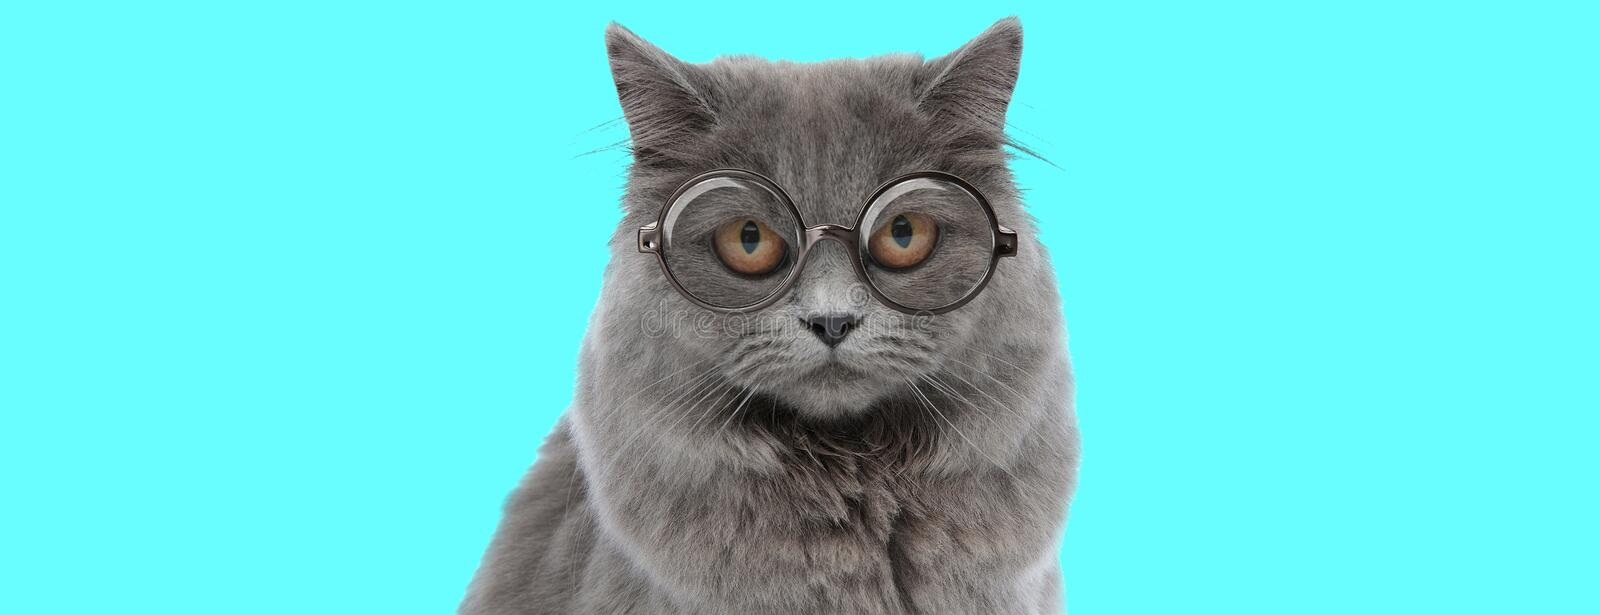 Funny British Longhair cat looking at camera with big eyes royalty free stock image